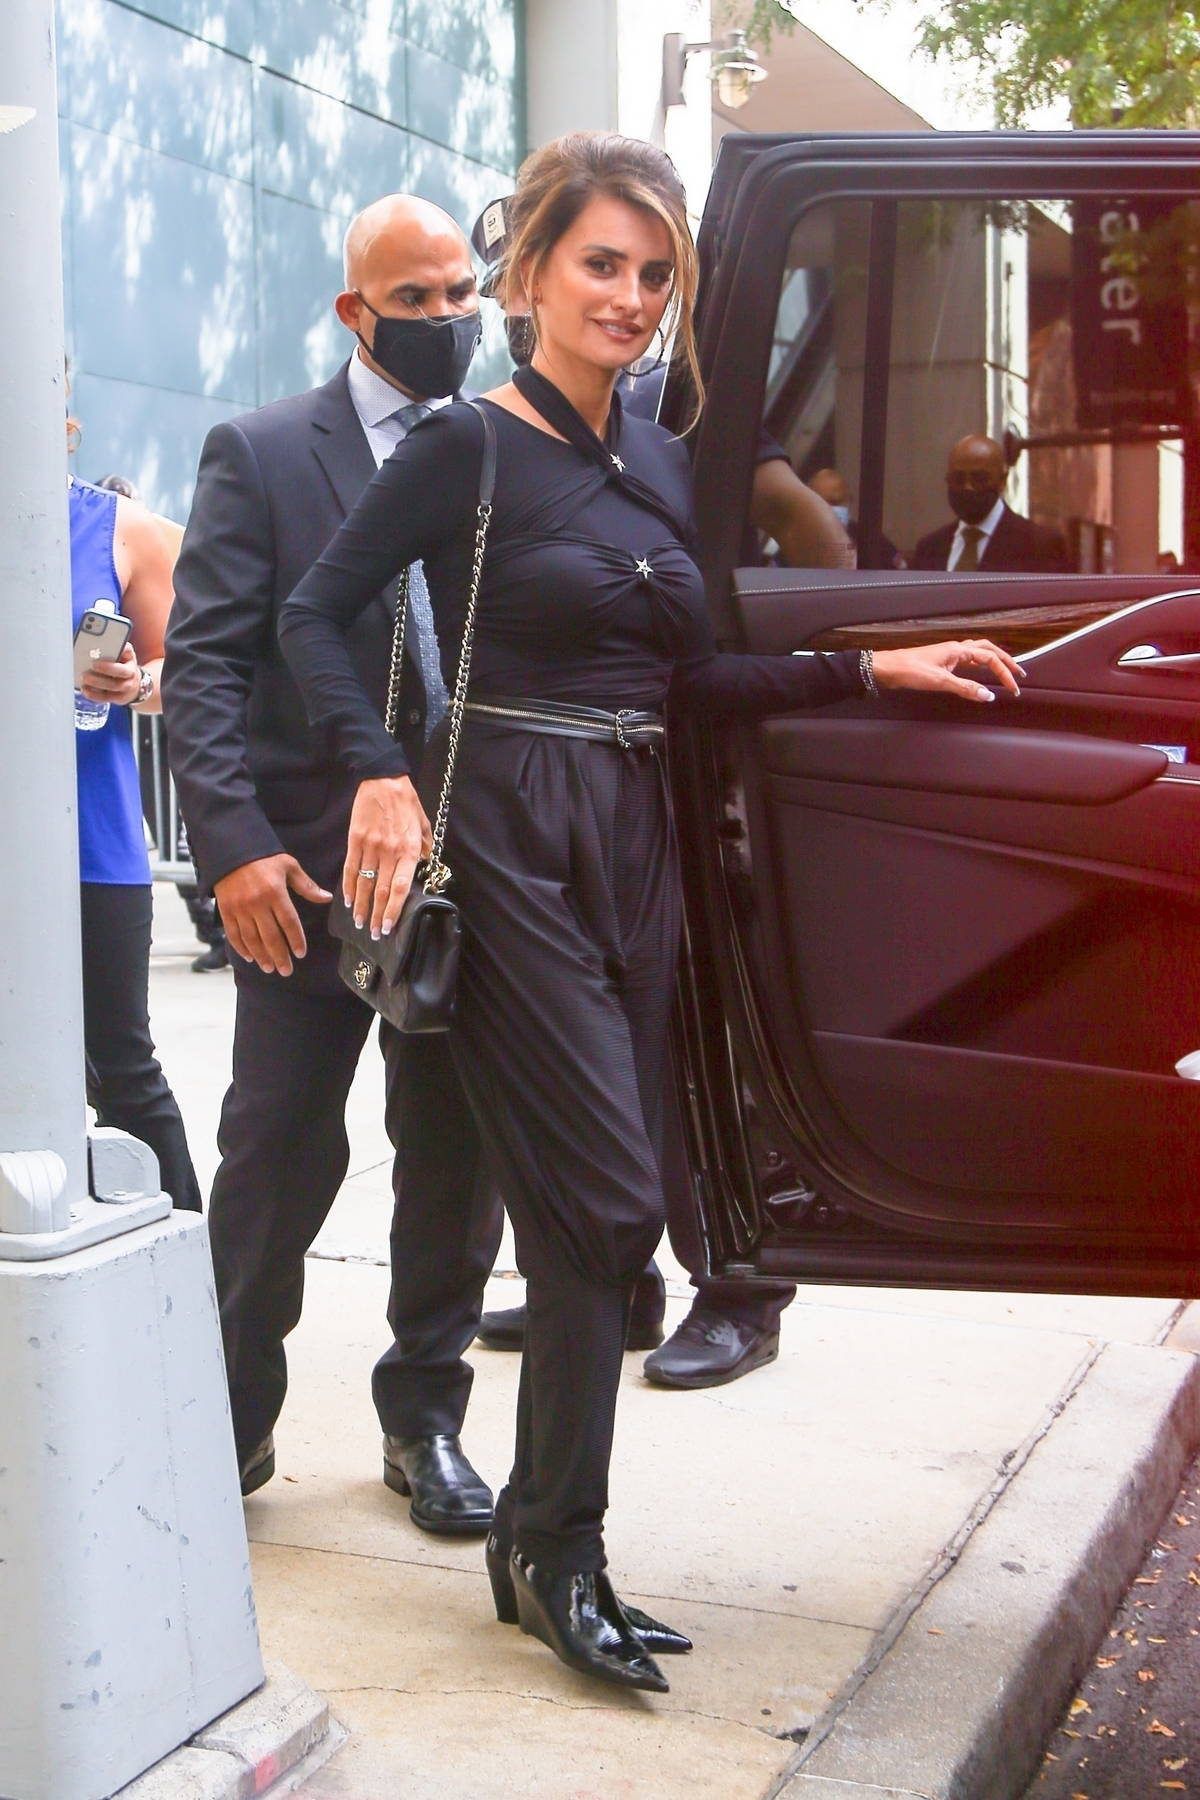 Penelope Cruz dons an all-black ensemble while heading out in New York City